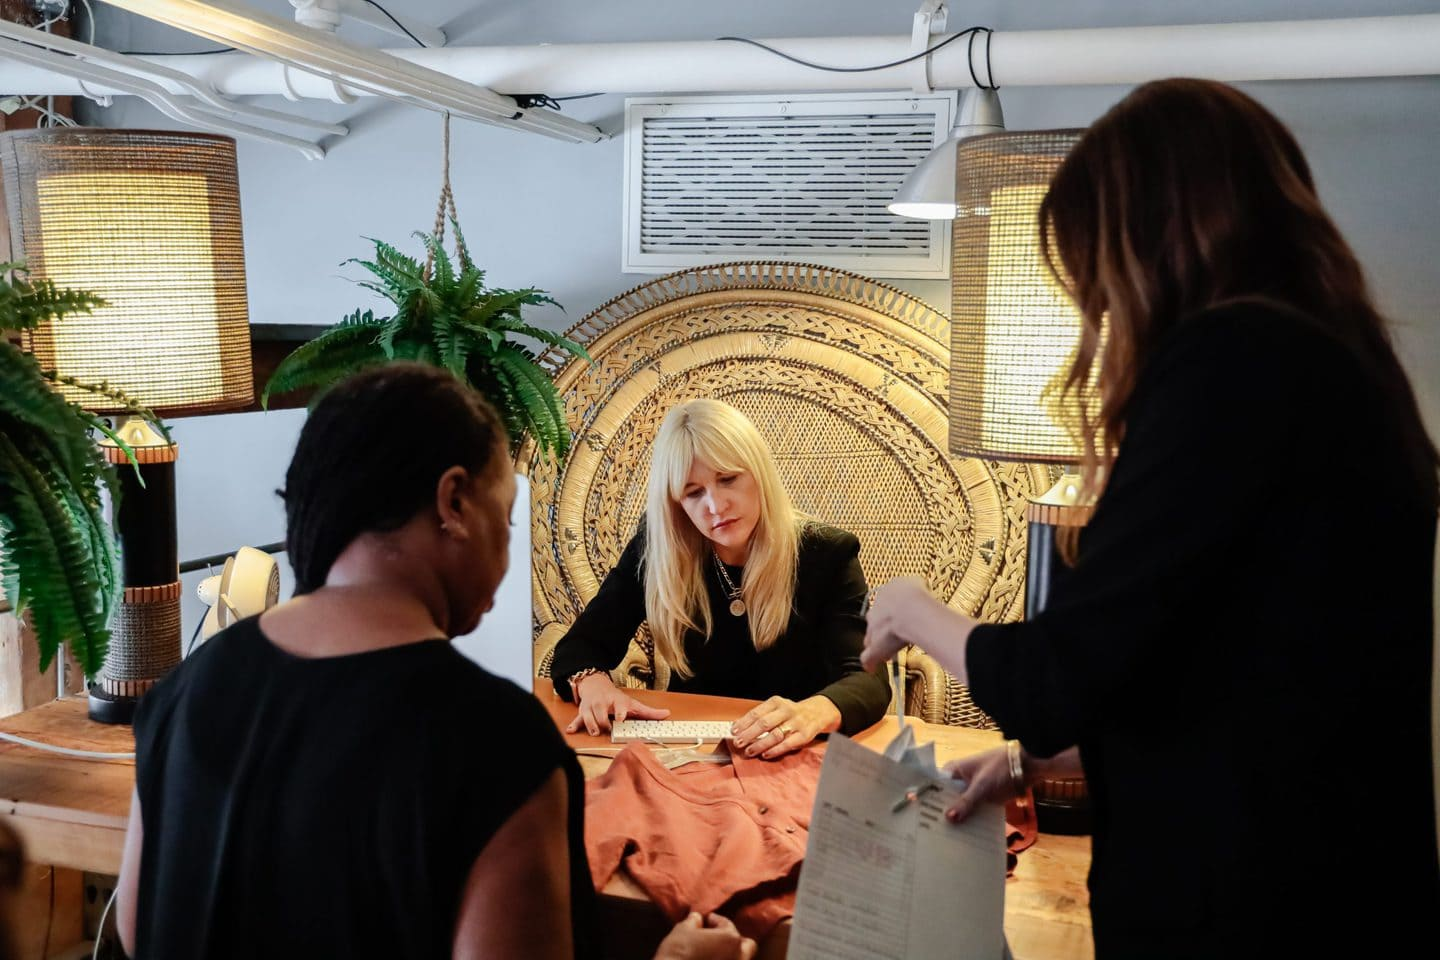 Jennifer Evans working with designers to show how to design clothes